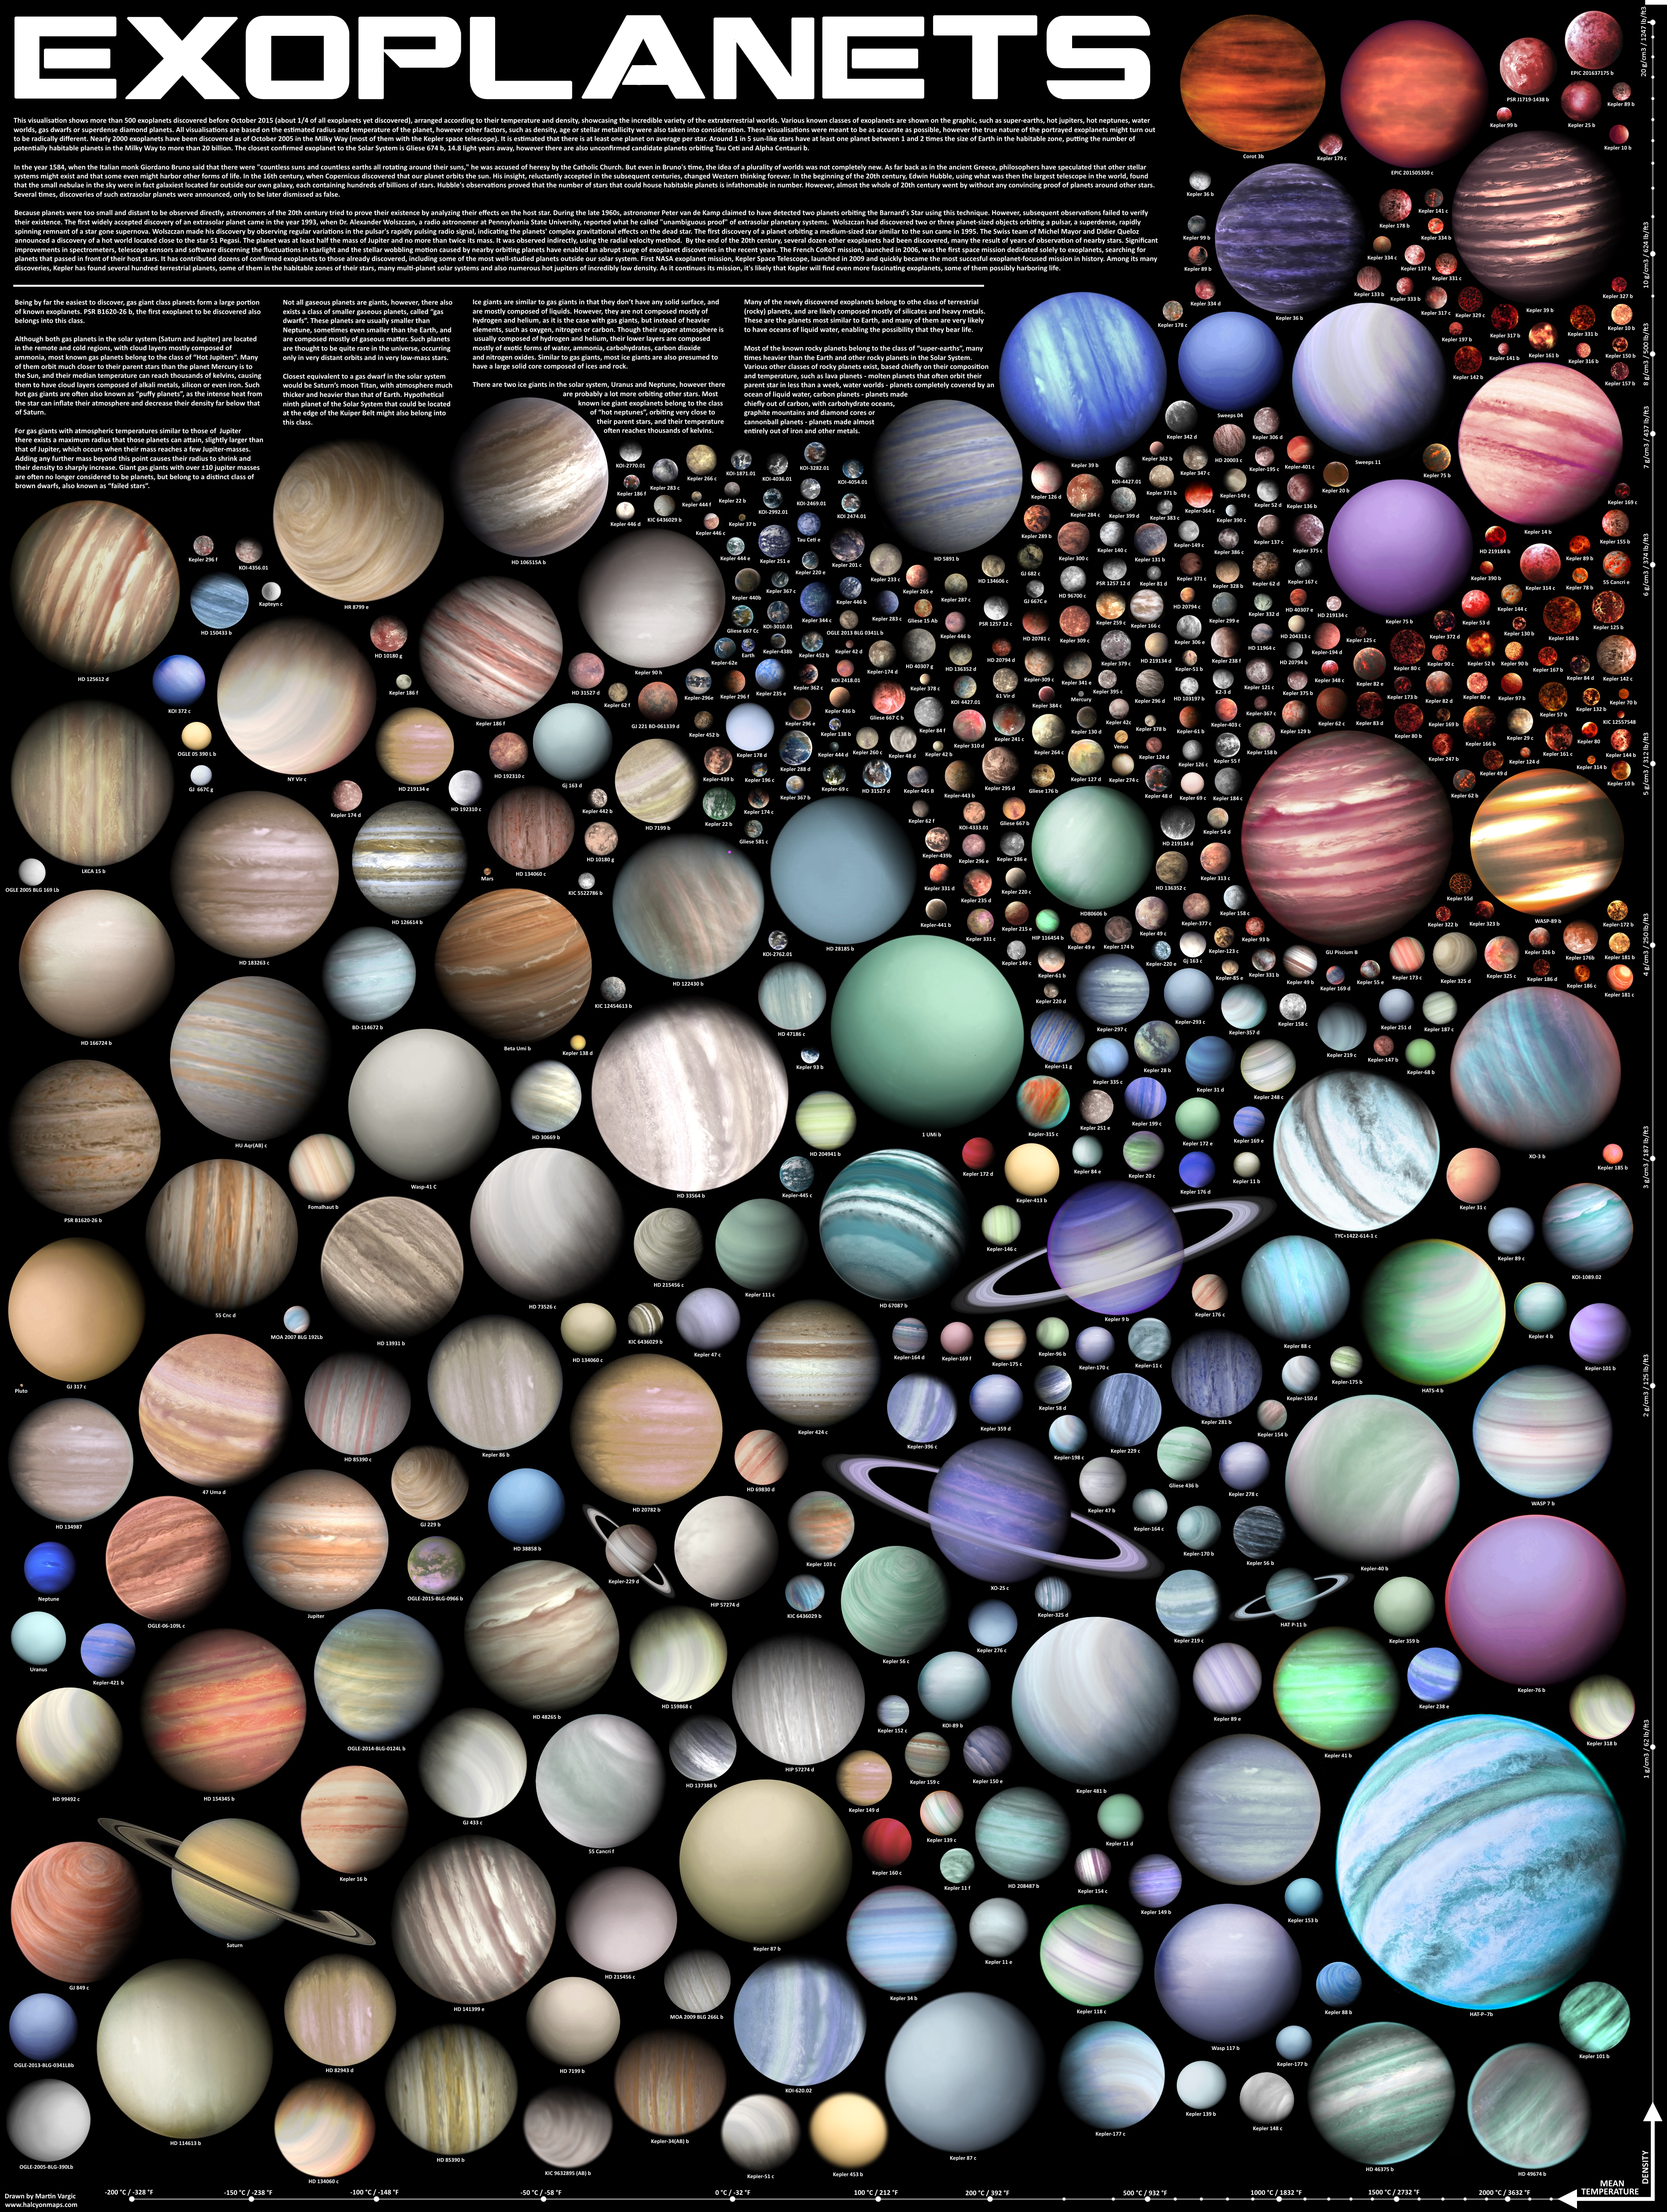 exoplanets_by_jaysimons-discovered